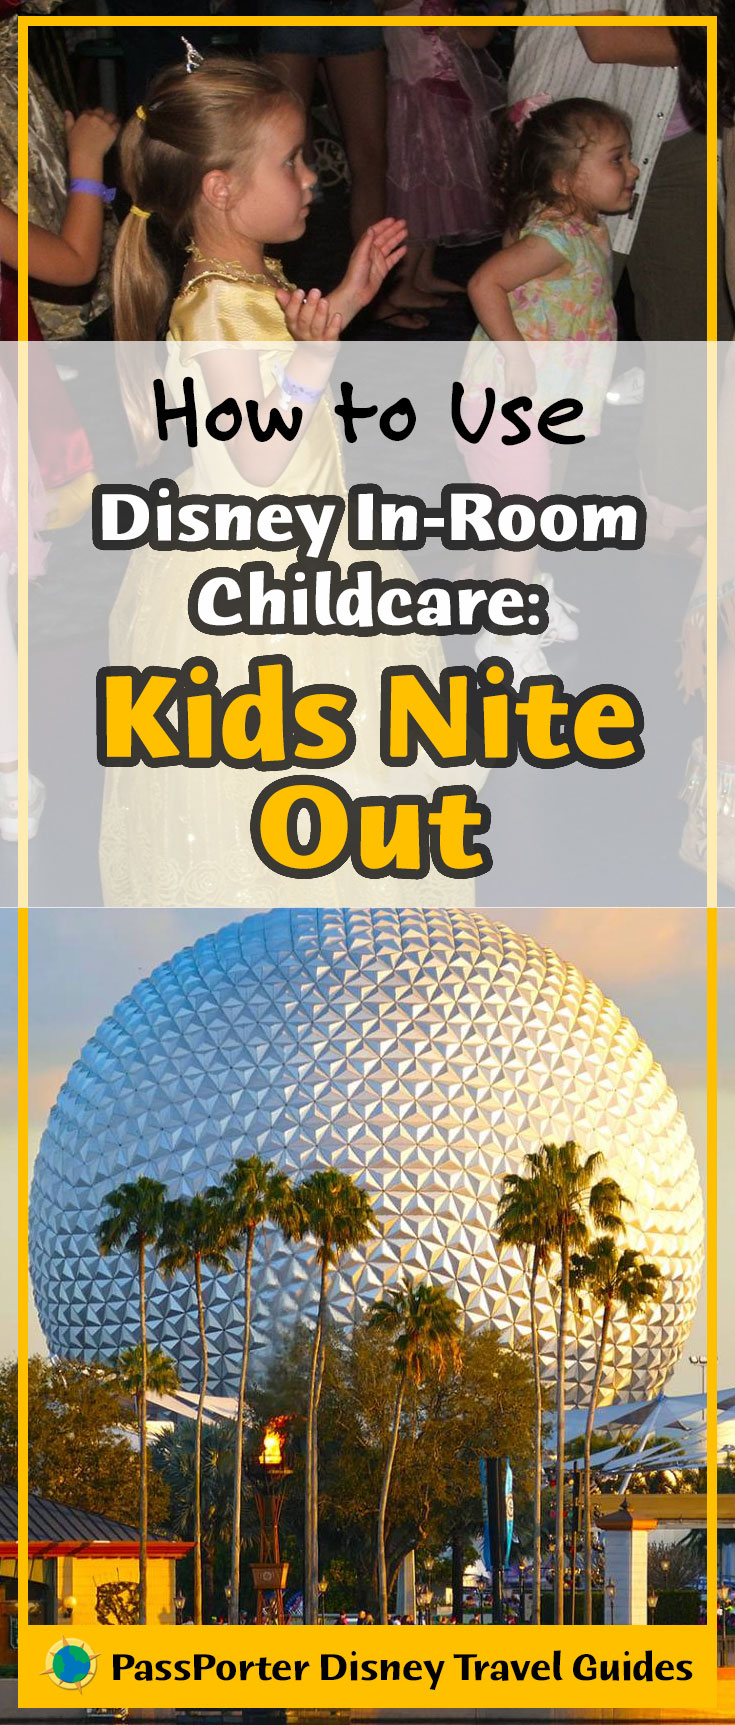 Enjoy a grown-up night out with Kid's Nite Out in-room child care | Walt Disney World | PassPorter.com